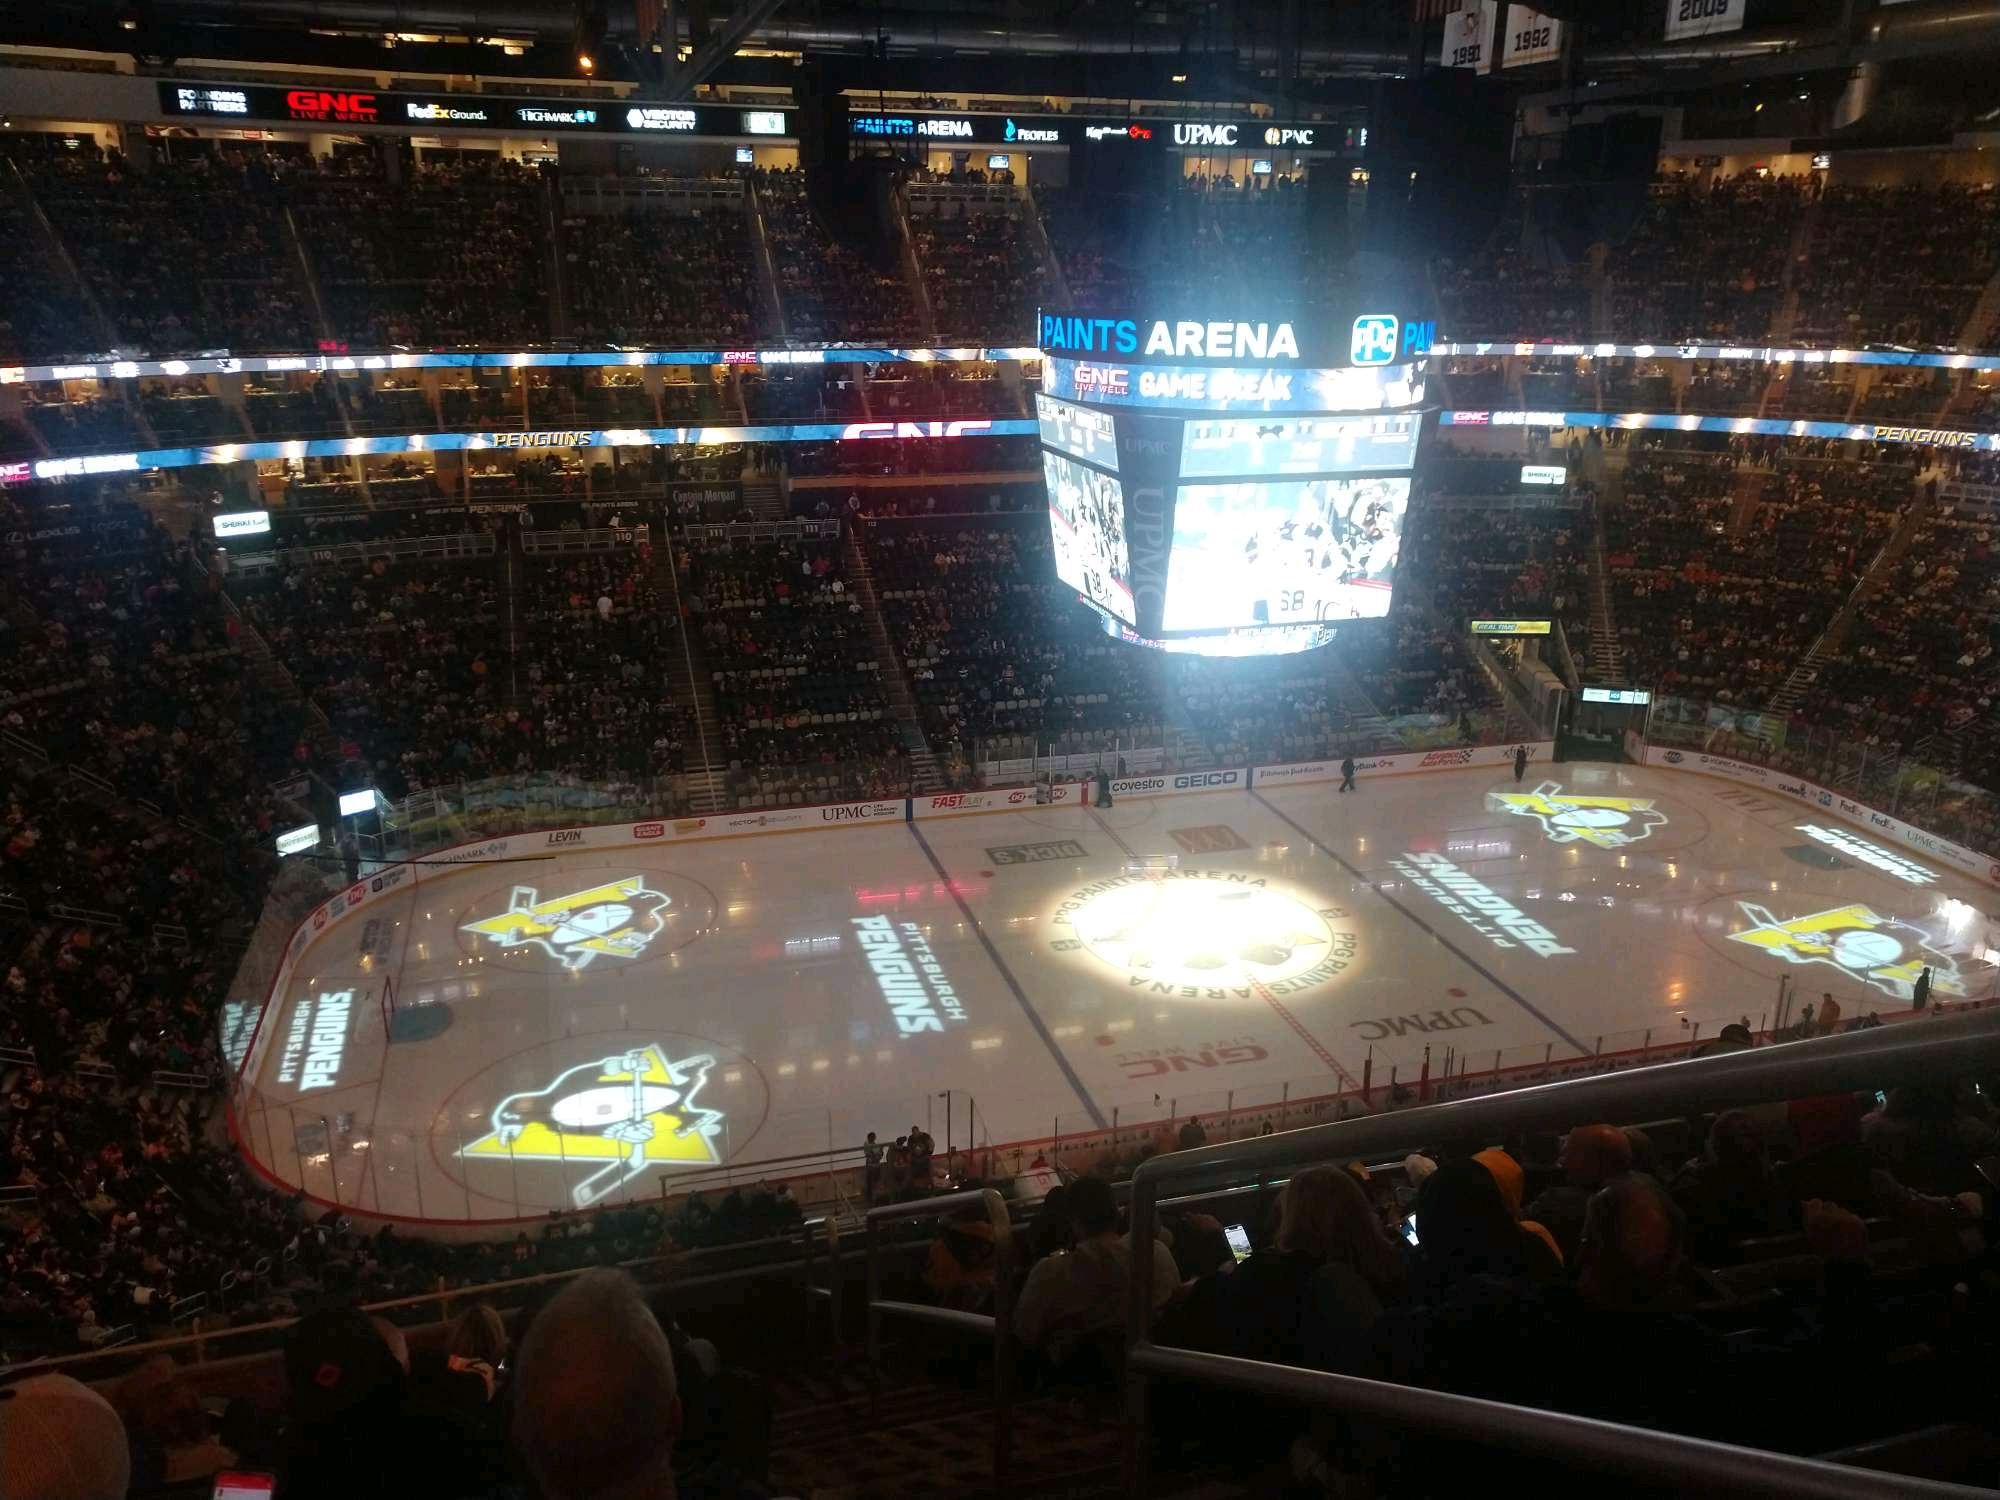 PPG Paints Arena Section 205 Row J Seat 1